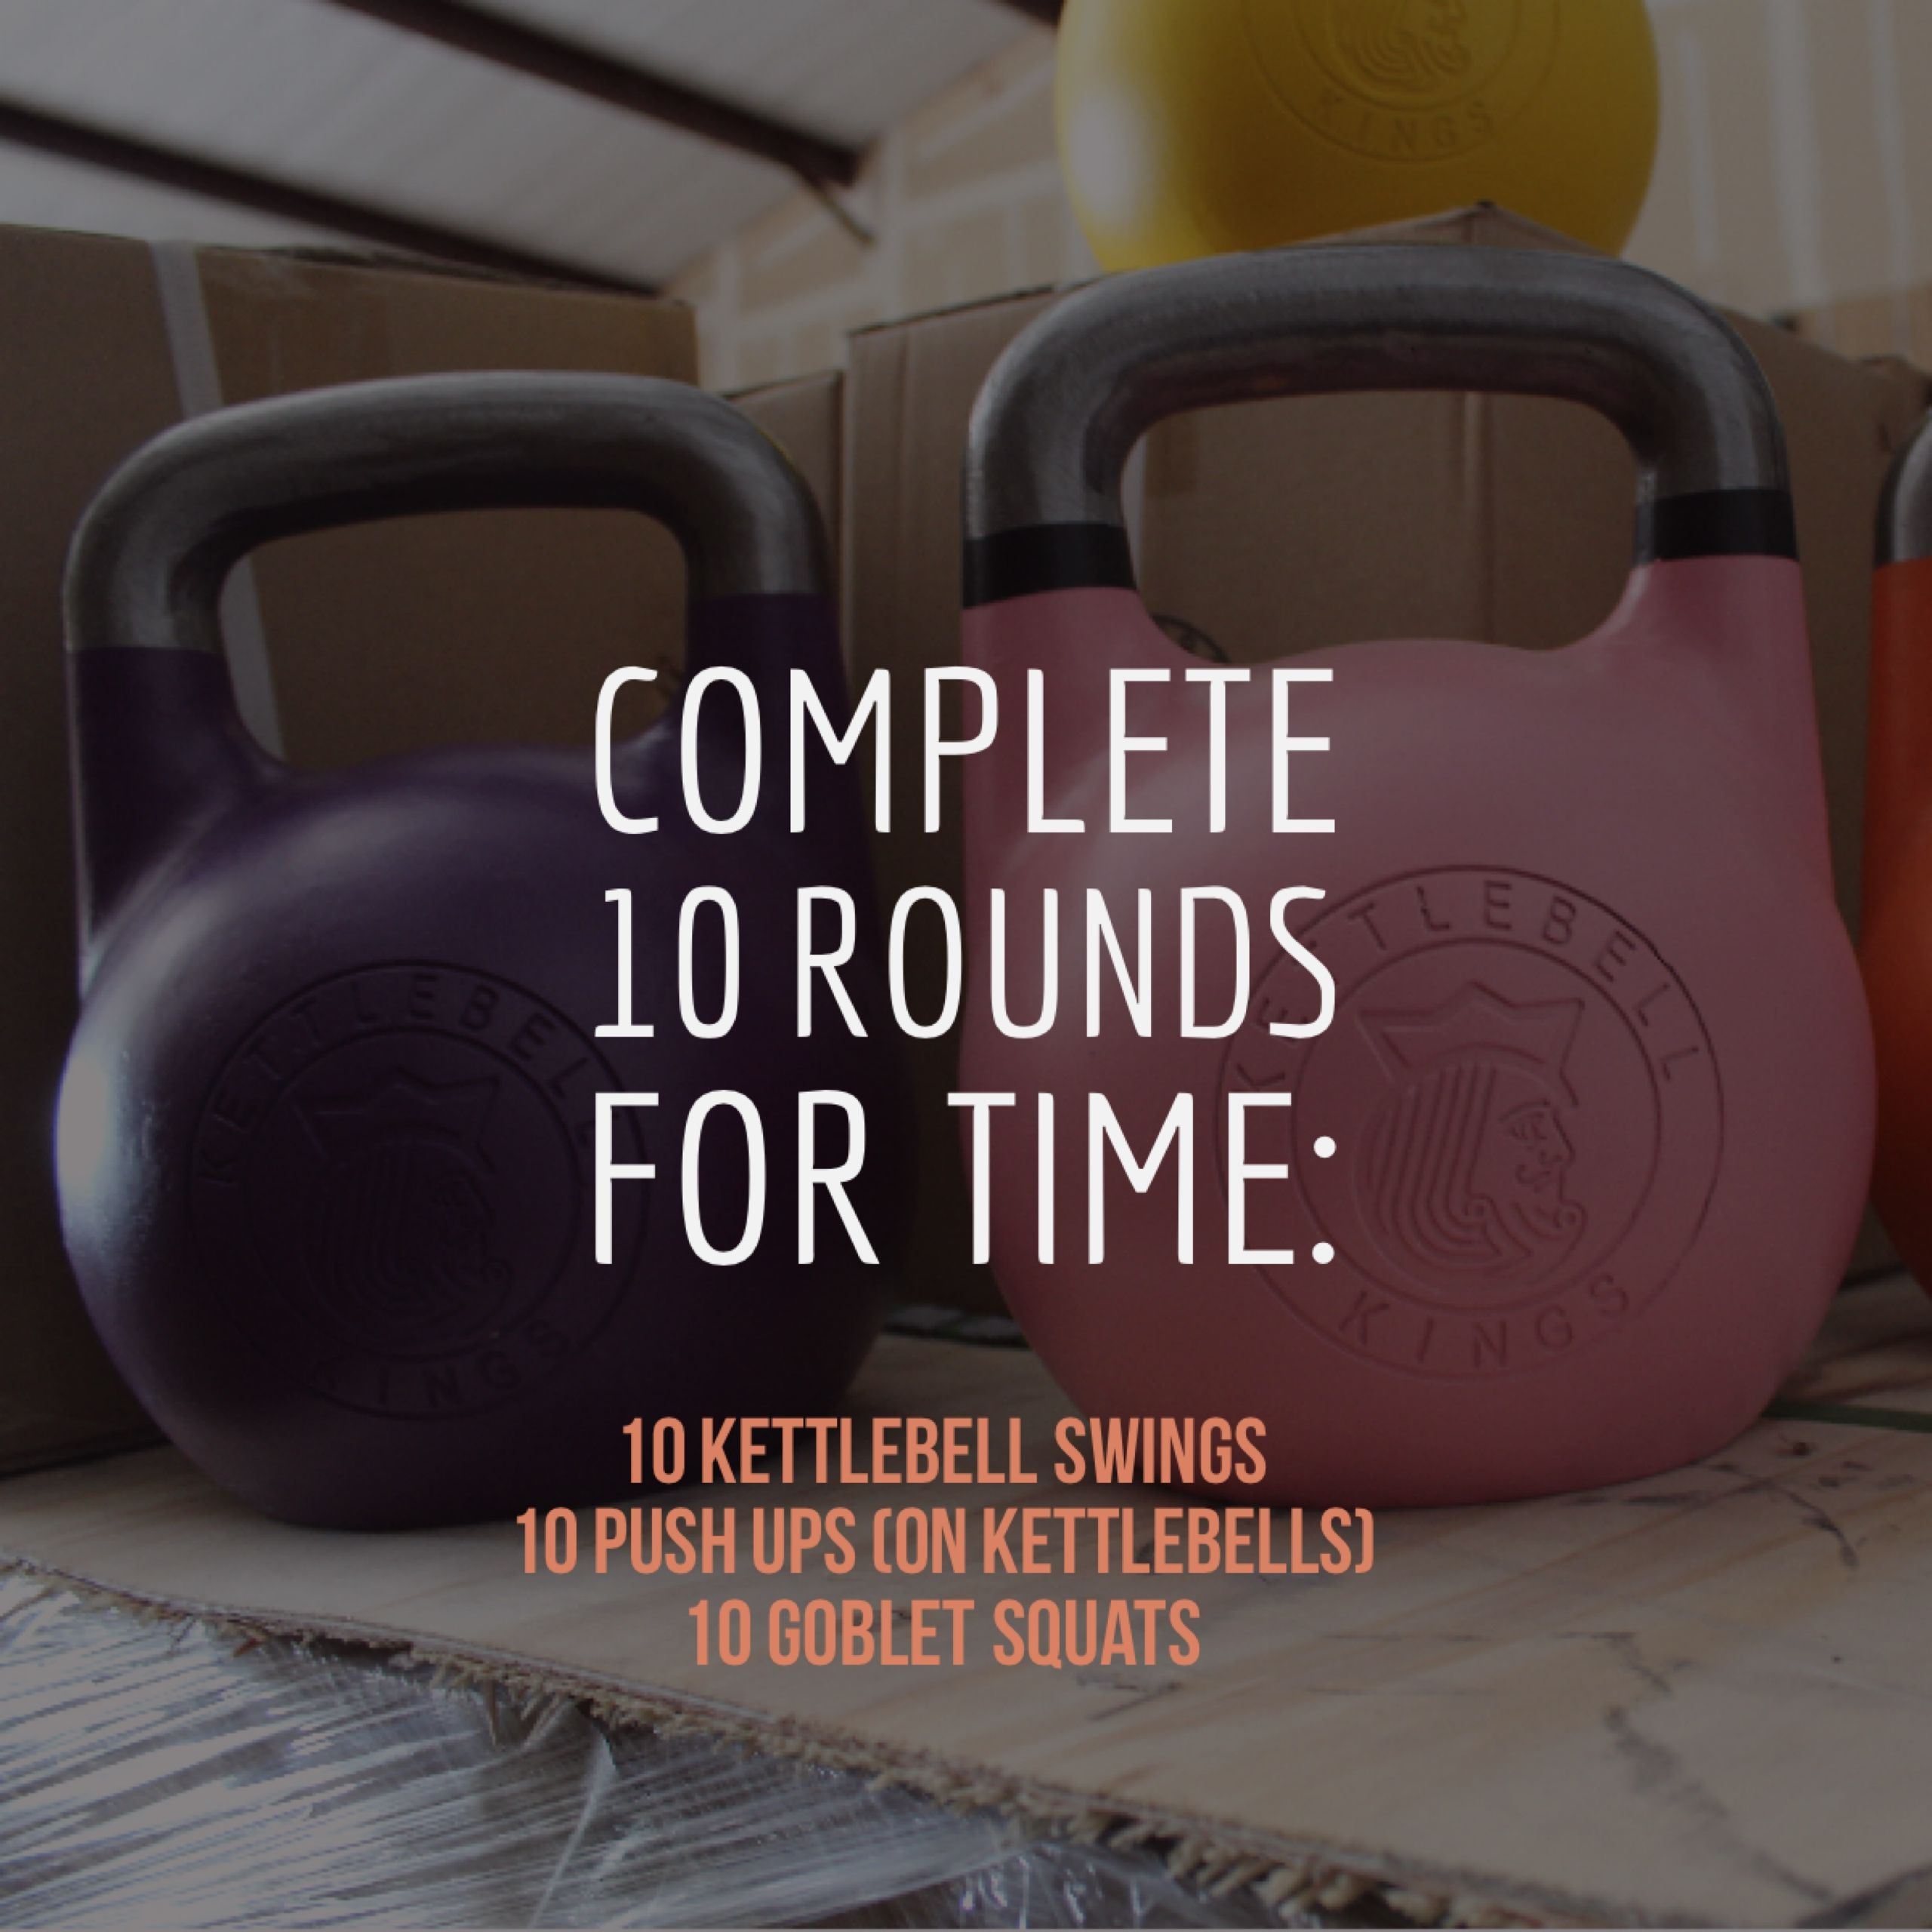 Kettlebell Training Benefits: Do As Fast As Possible While Maintaining Proper Form